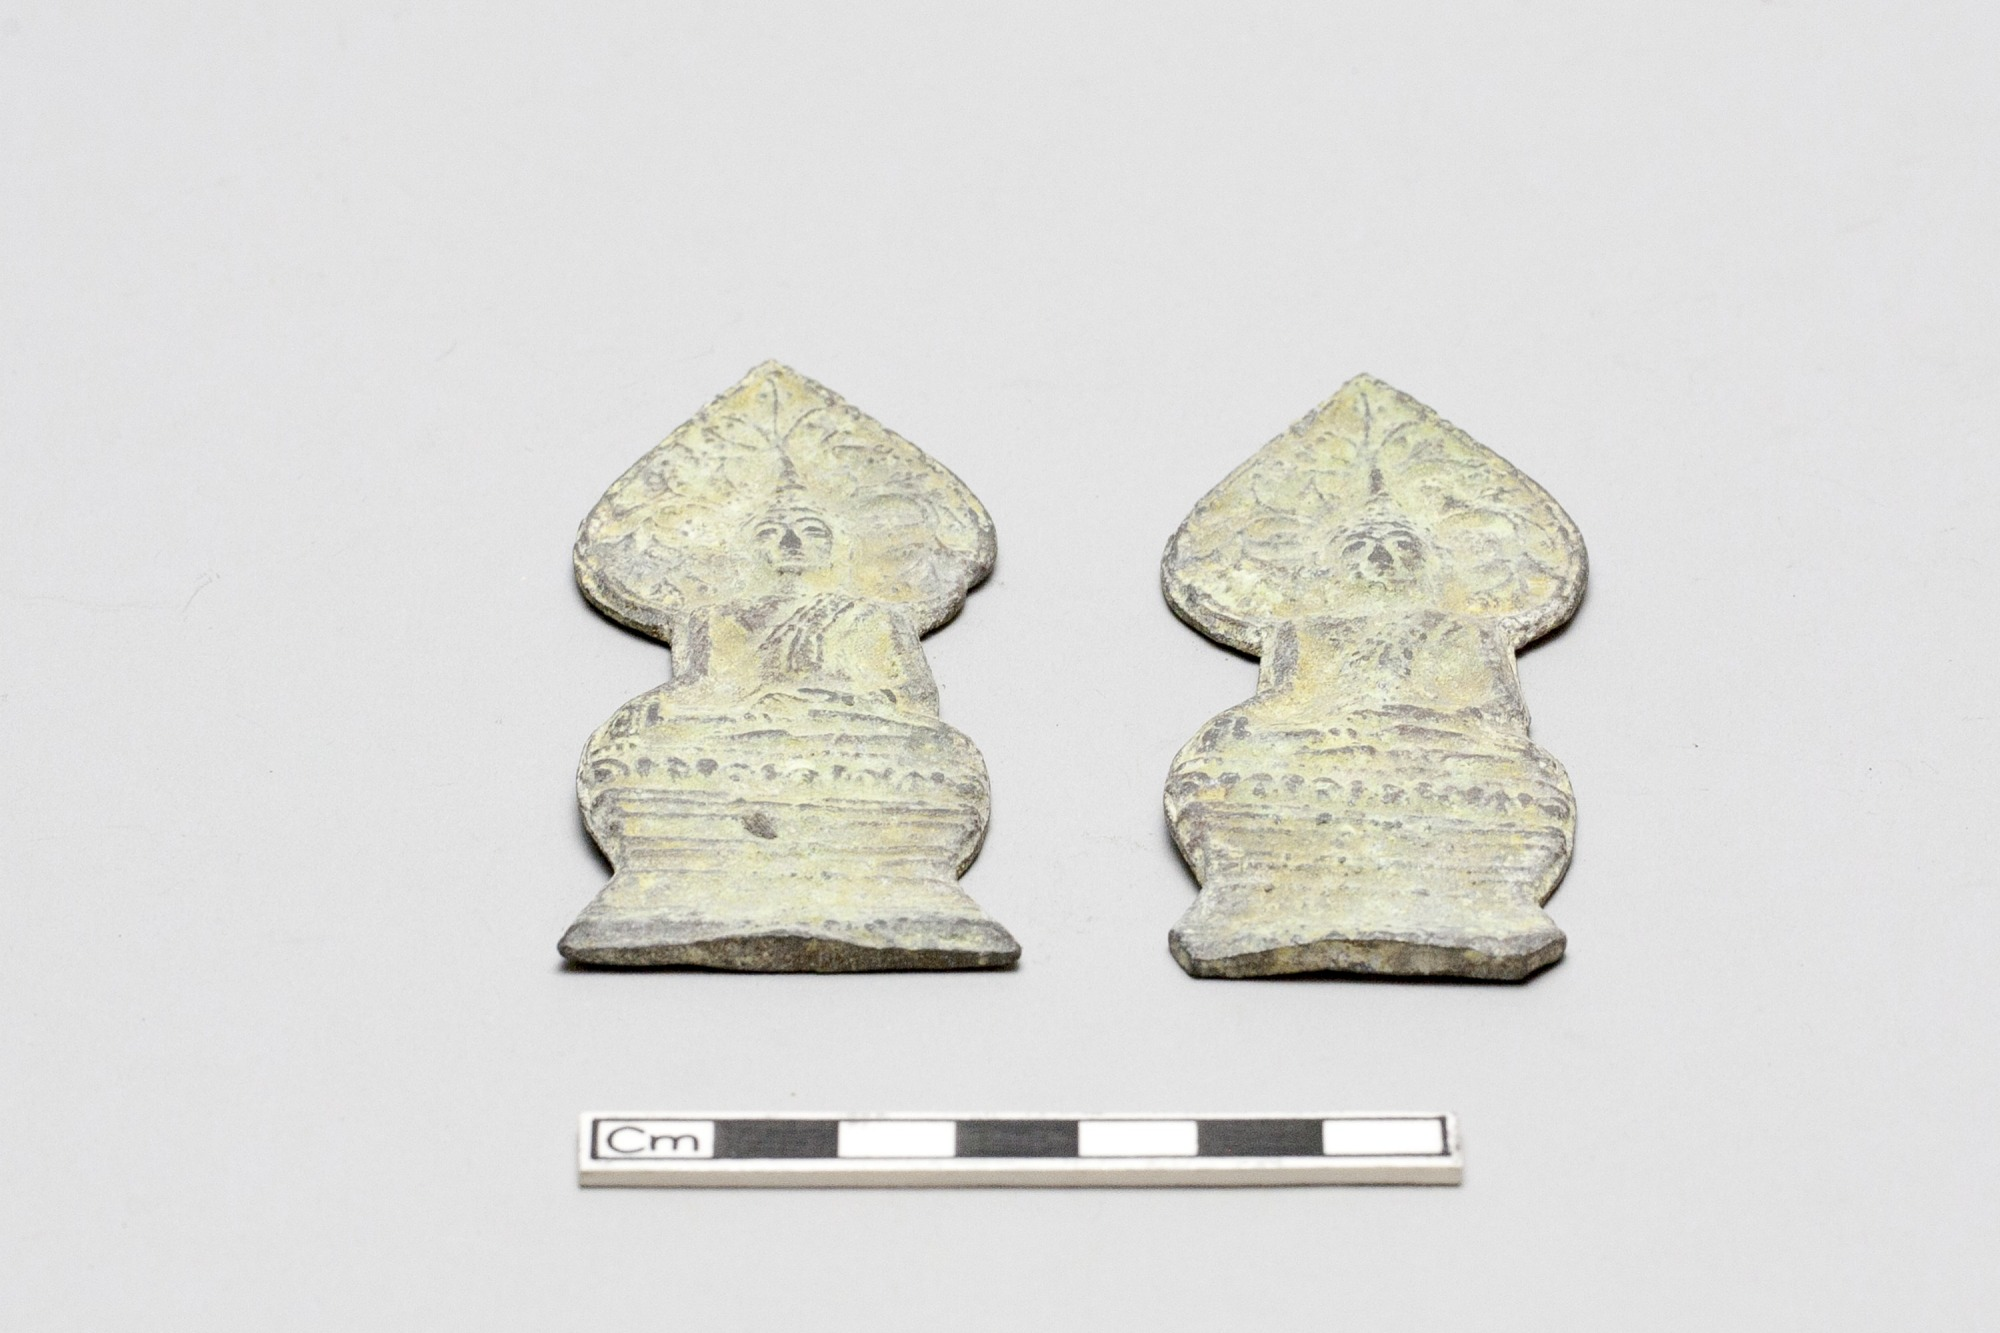 Two votive plaques